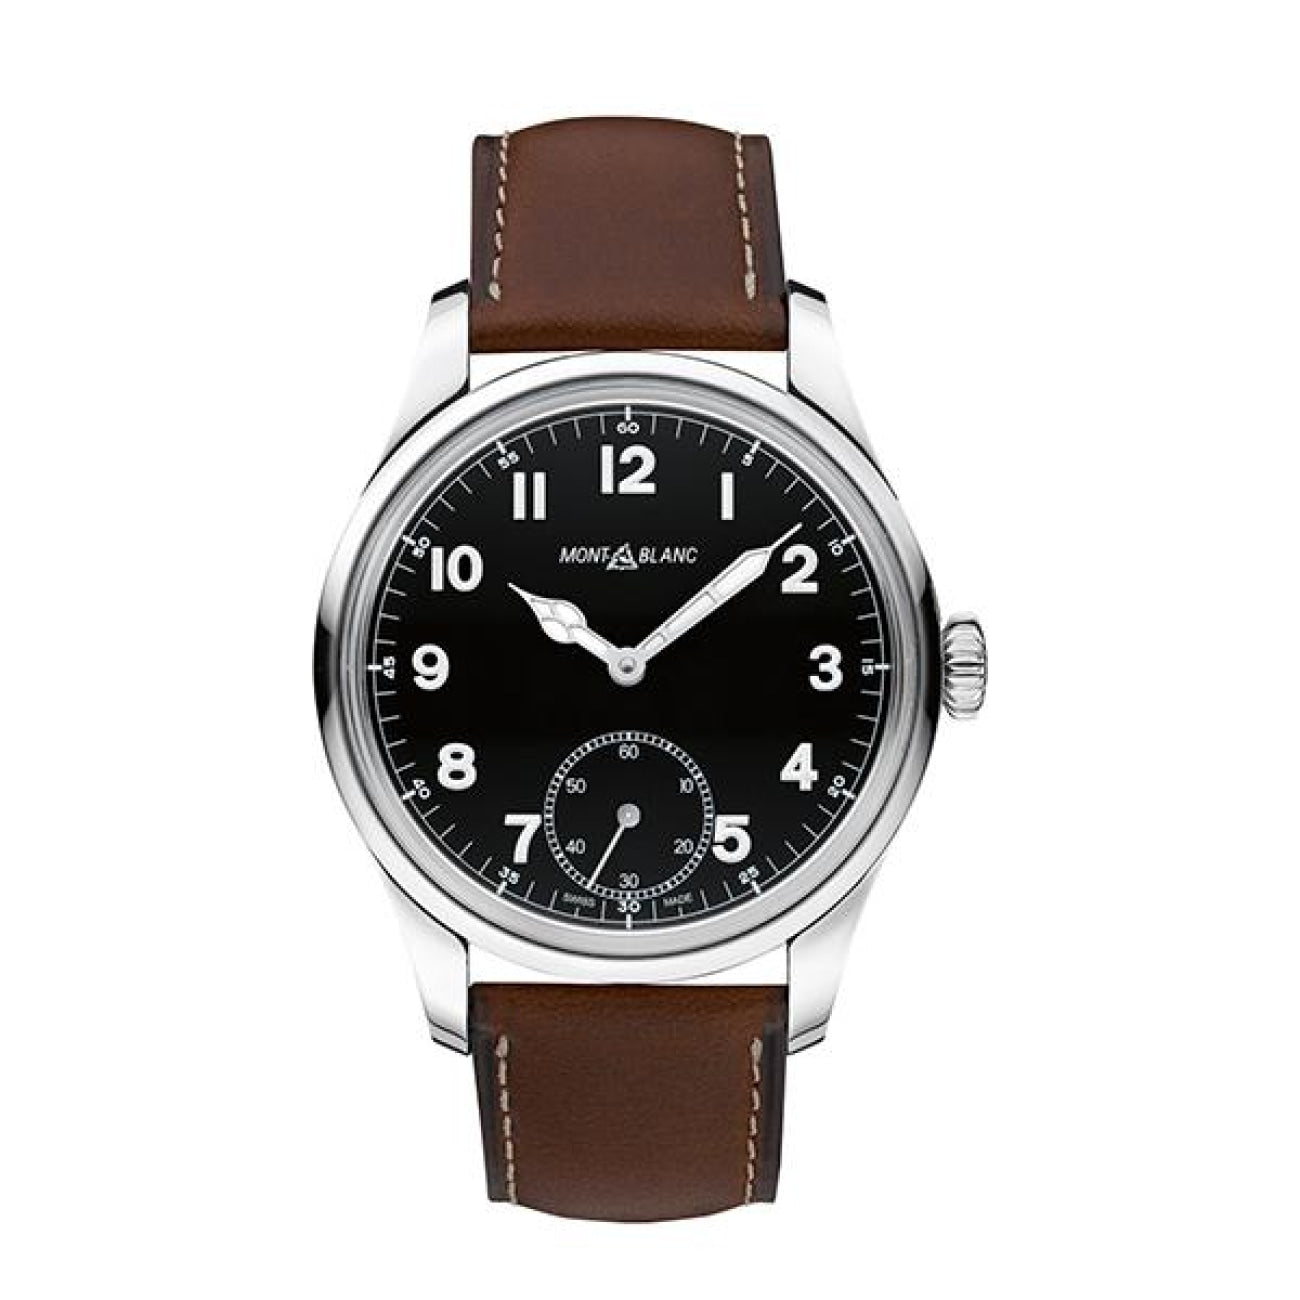 Montblanc Watches - Montblanc 1858 Small Second | Manfredi Jewels